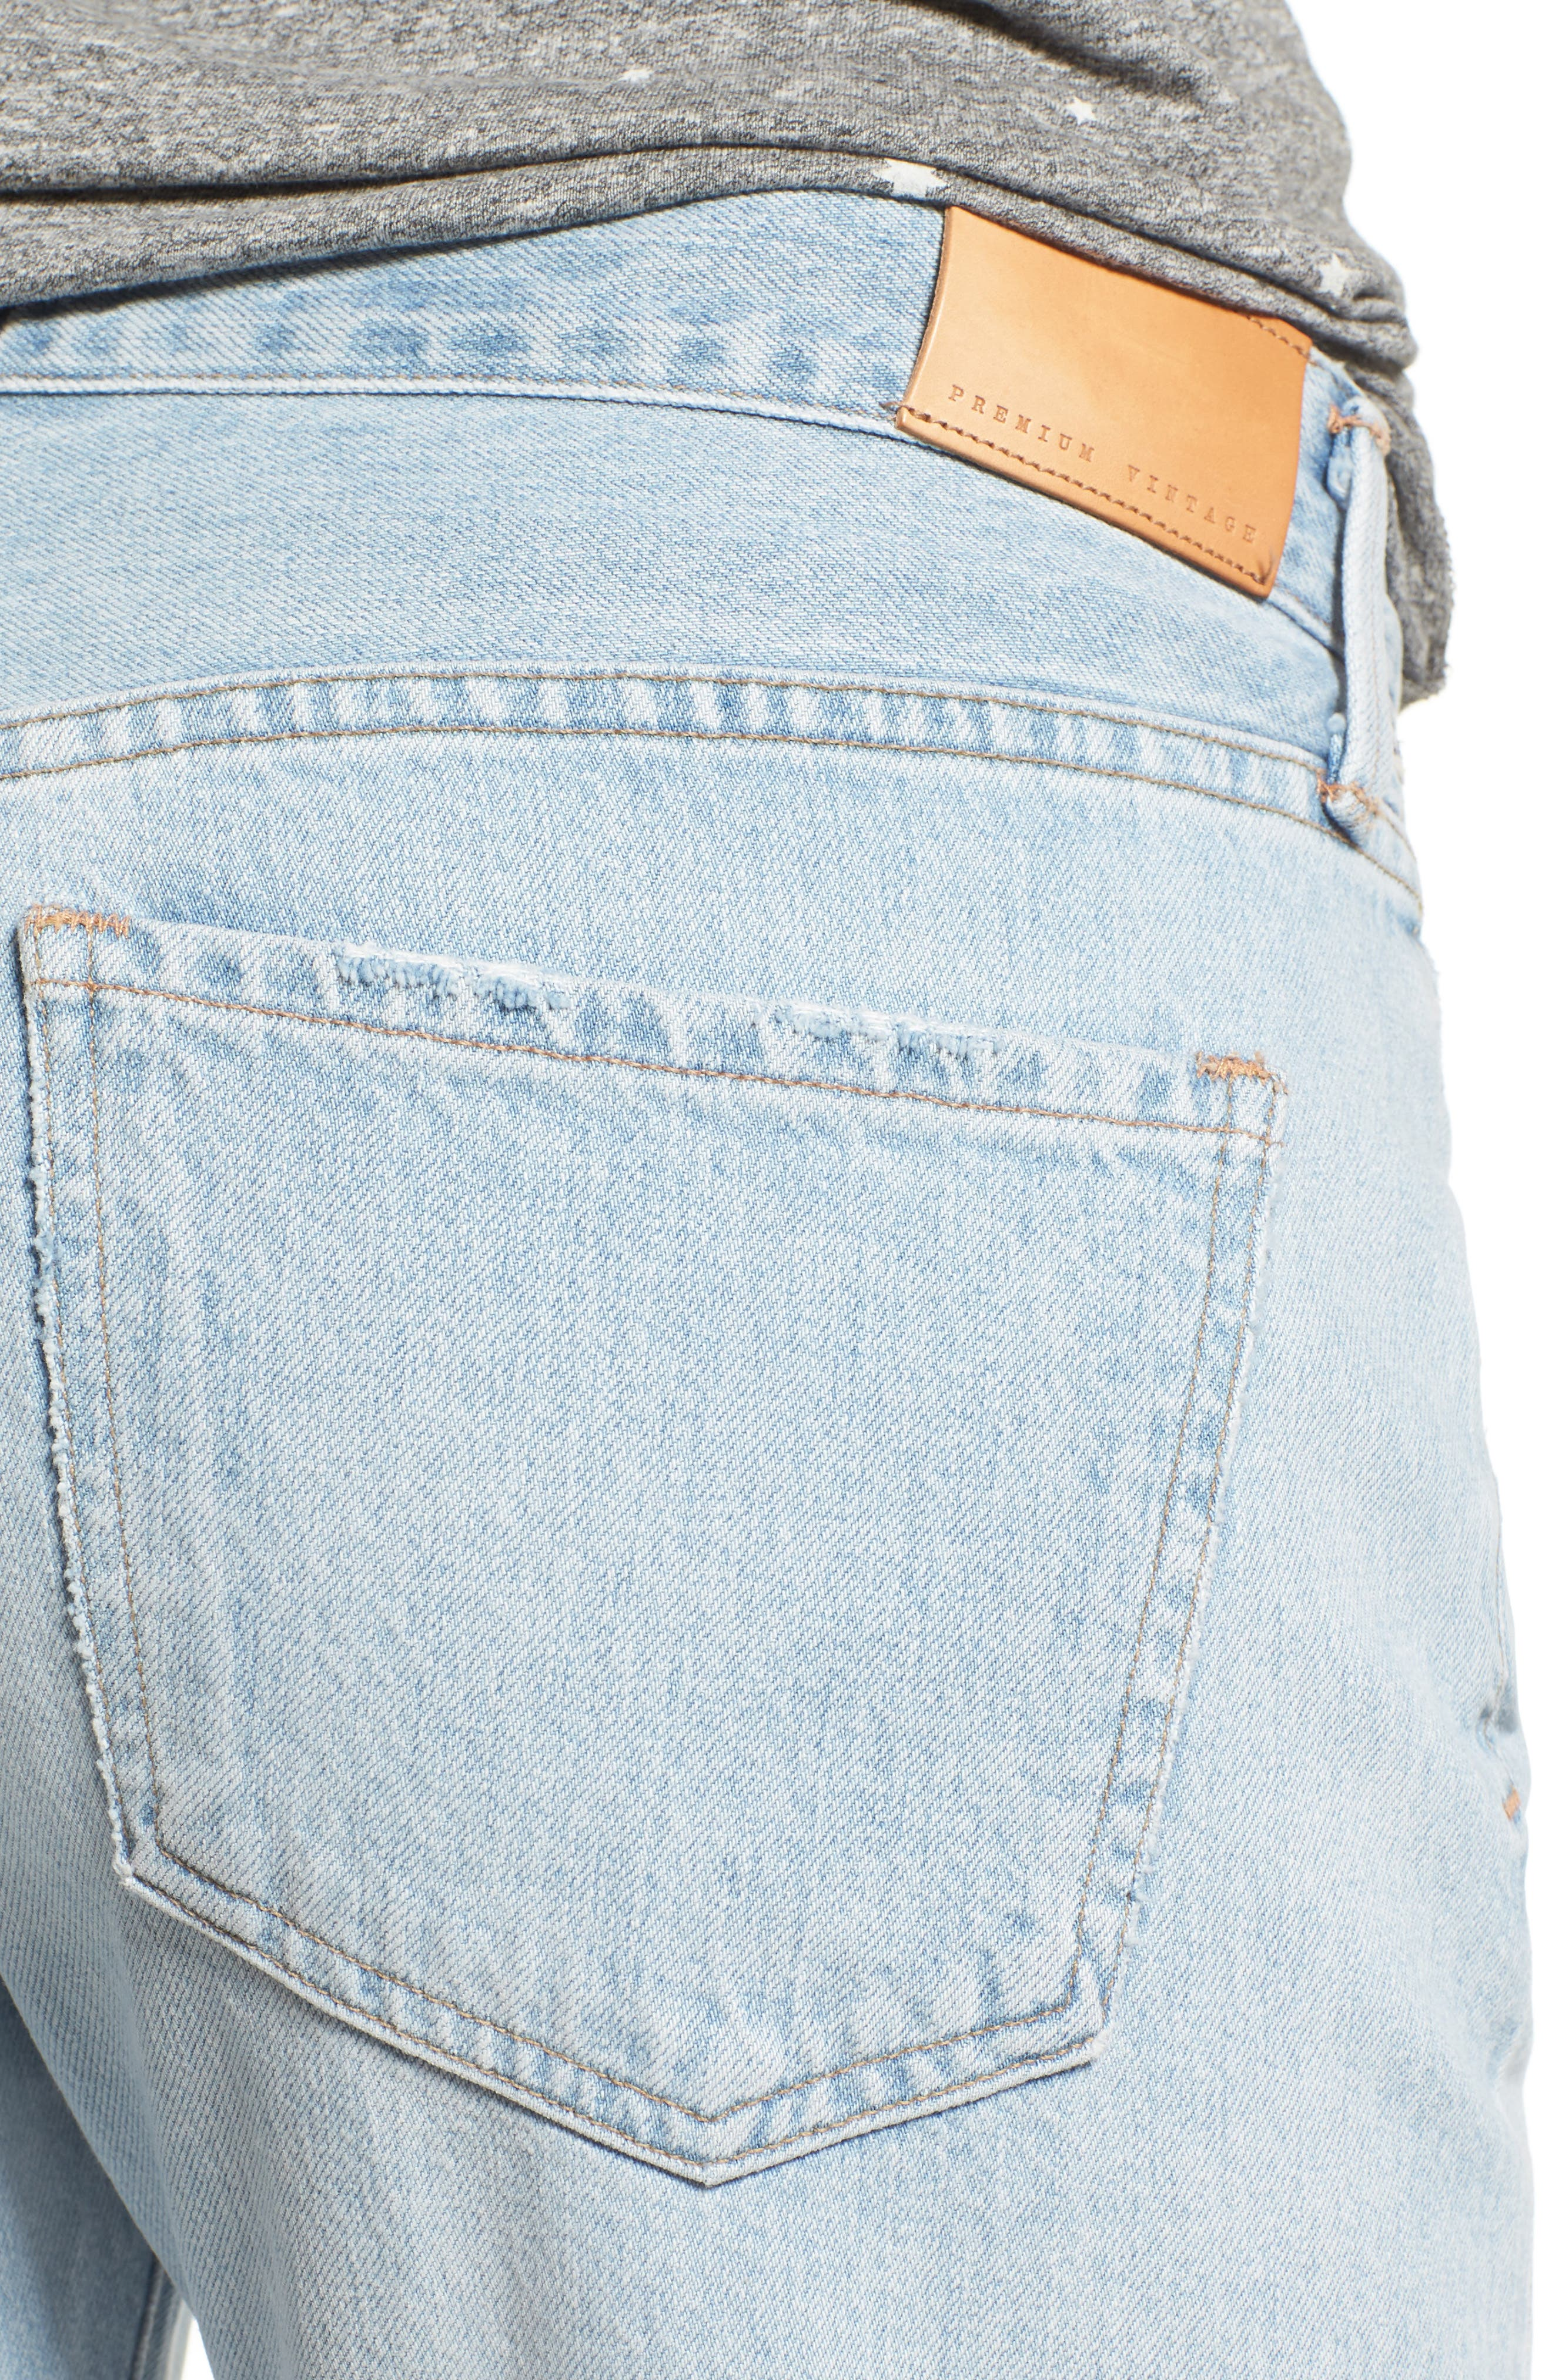 Alternate Image 4  - Citizens of Humanity Emerson High Waist Ripped Boyfriend Jeans (Distressed Rock)